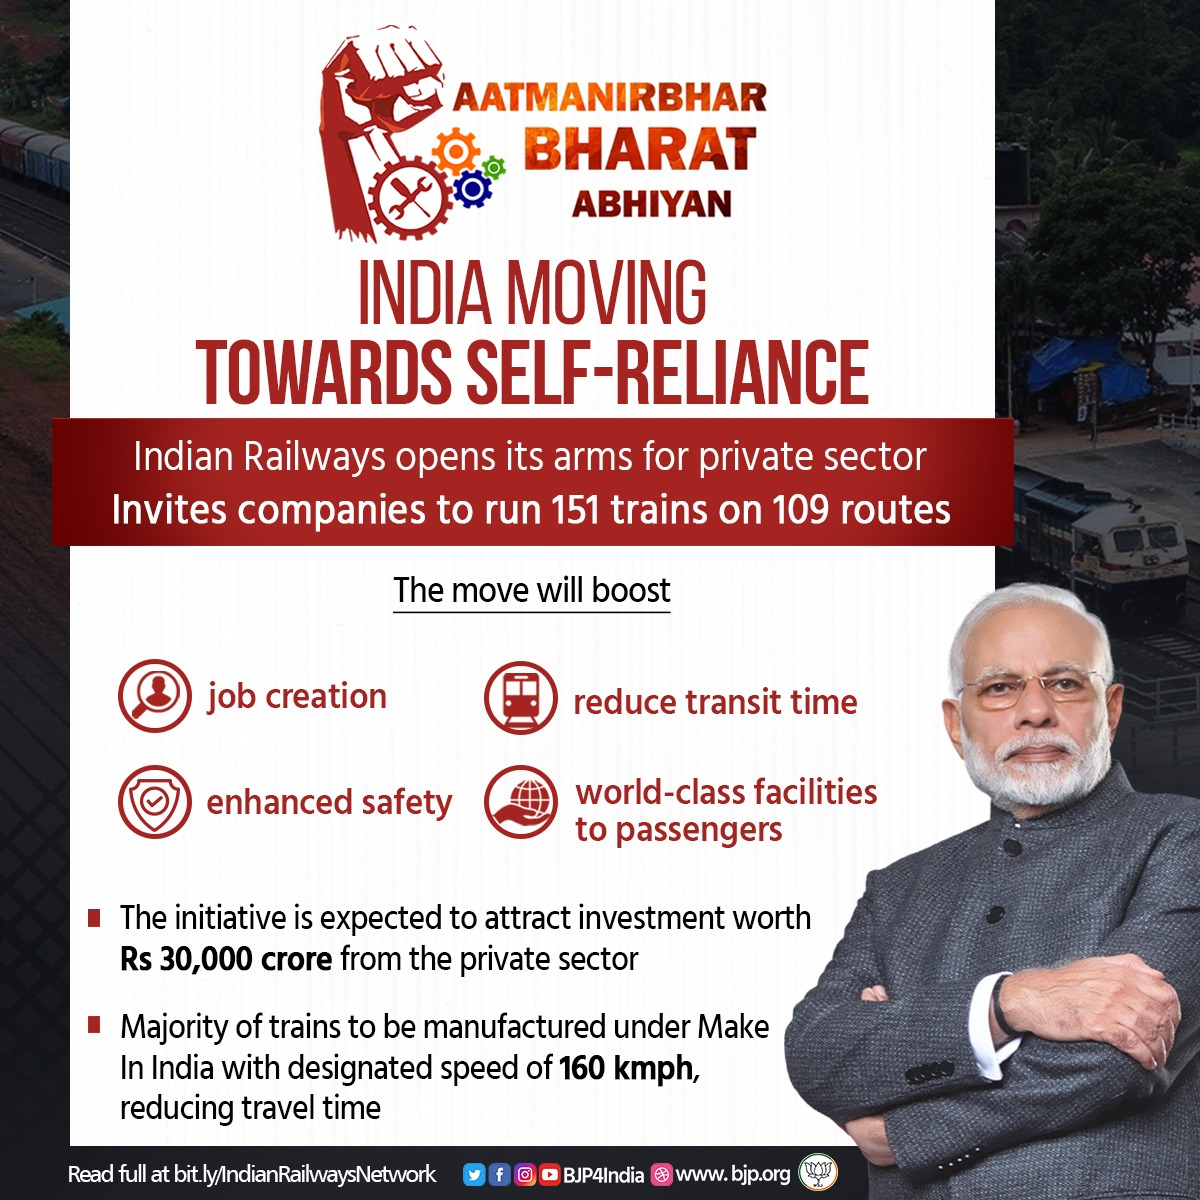 The #AatmanirbharBharat Abhiyan is helping India move towards self-reliance. Indian Railways has invited private companies to run 151 trains on 109 routes. This will boost - Job creation Reduced transit time Enhanced safety World-class facilities